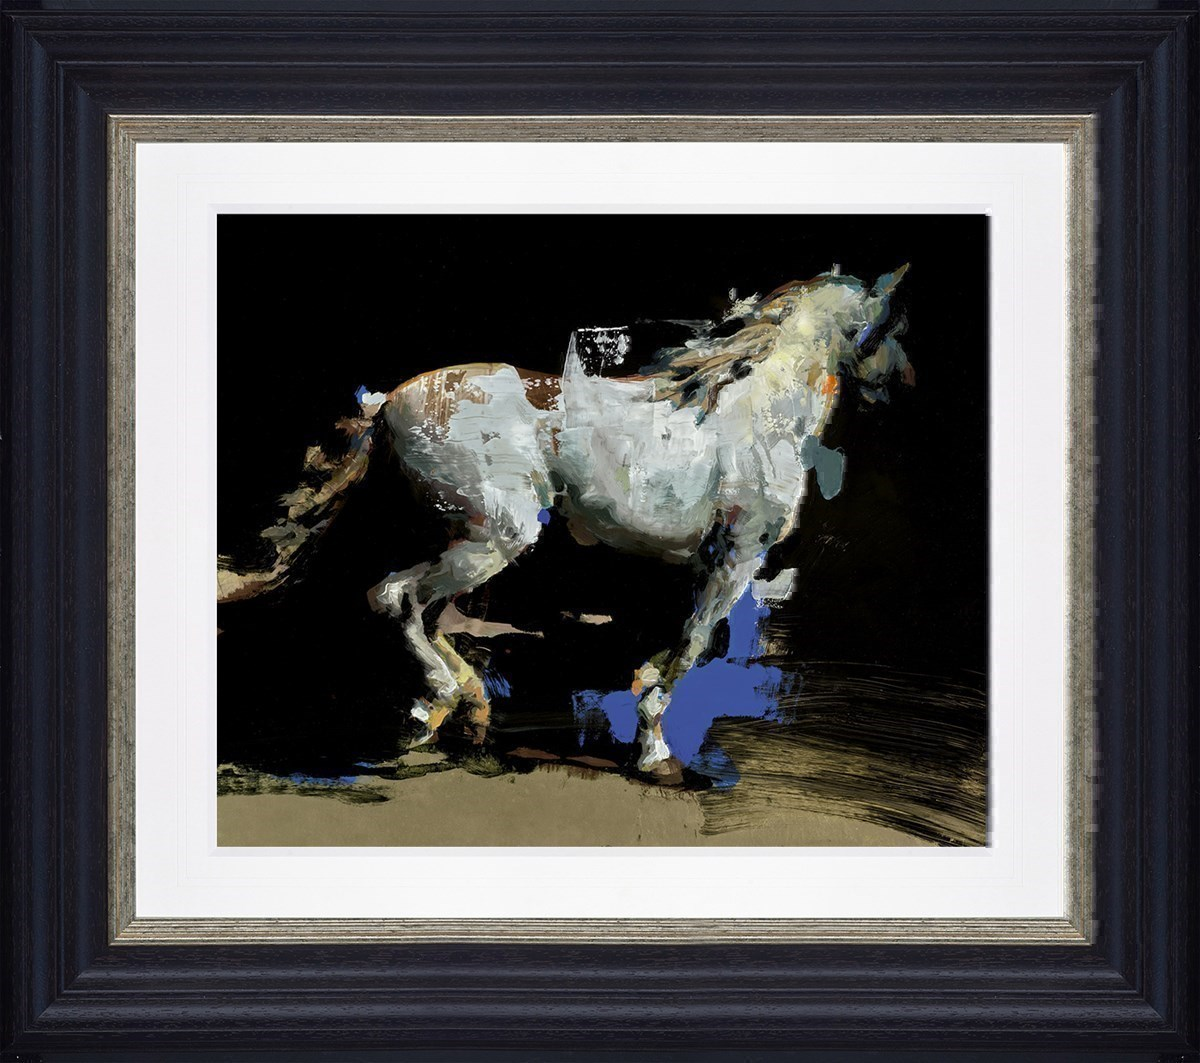 Arabian VII by Christian Hook - Paper Edition sized 17x14 inches. Available from Whitewall Galleries